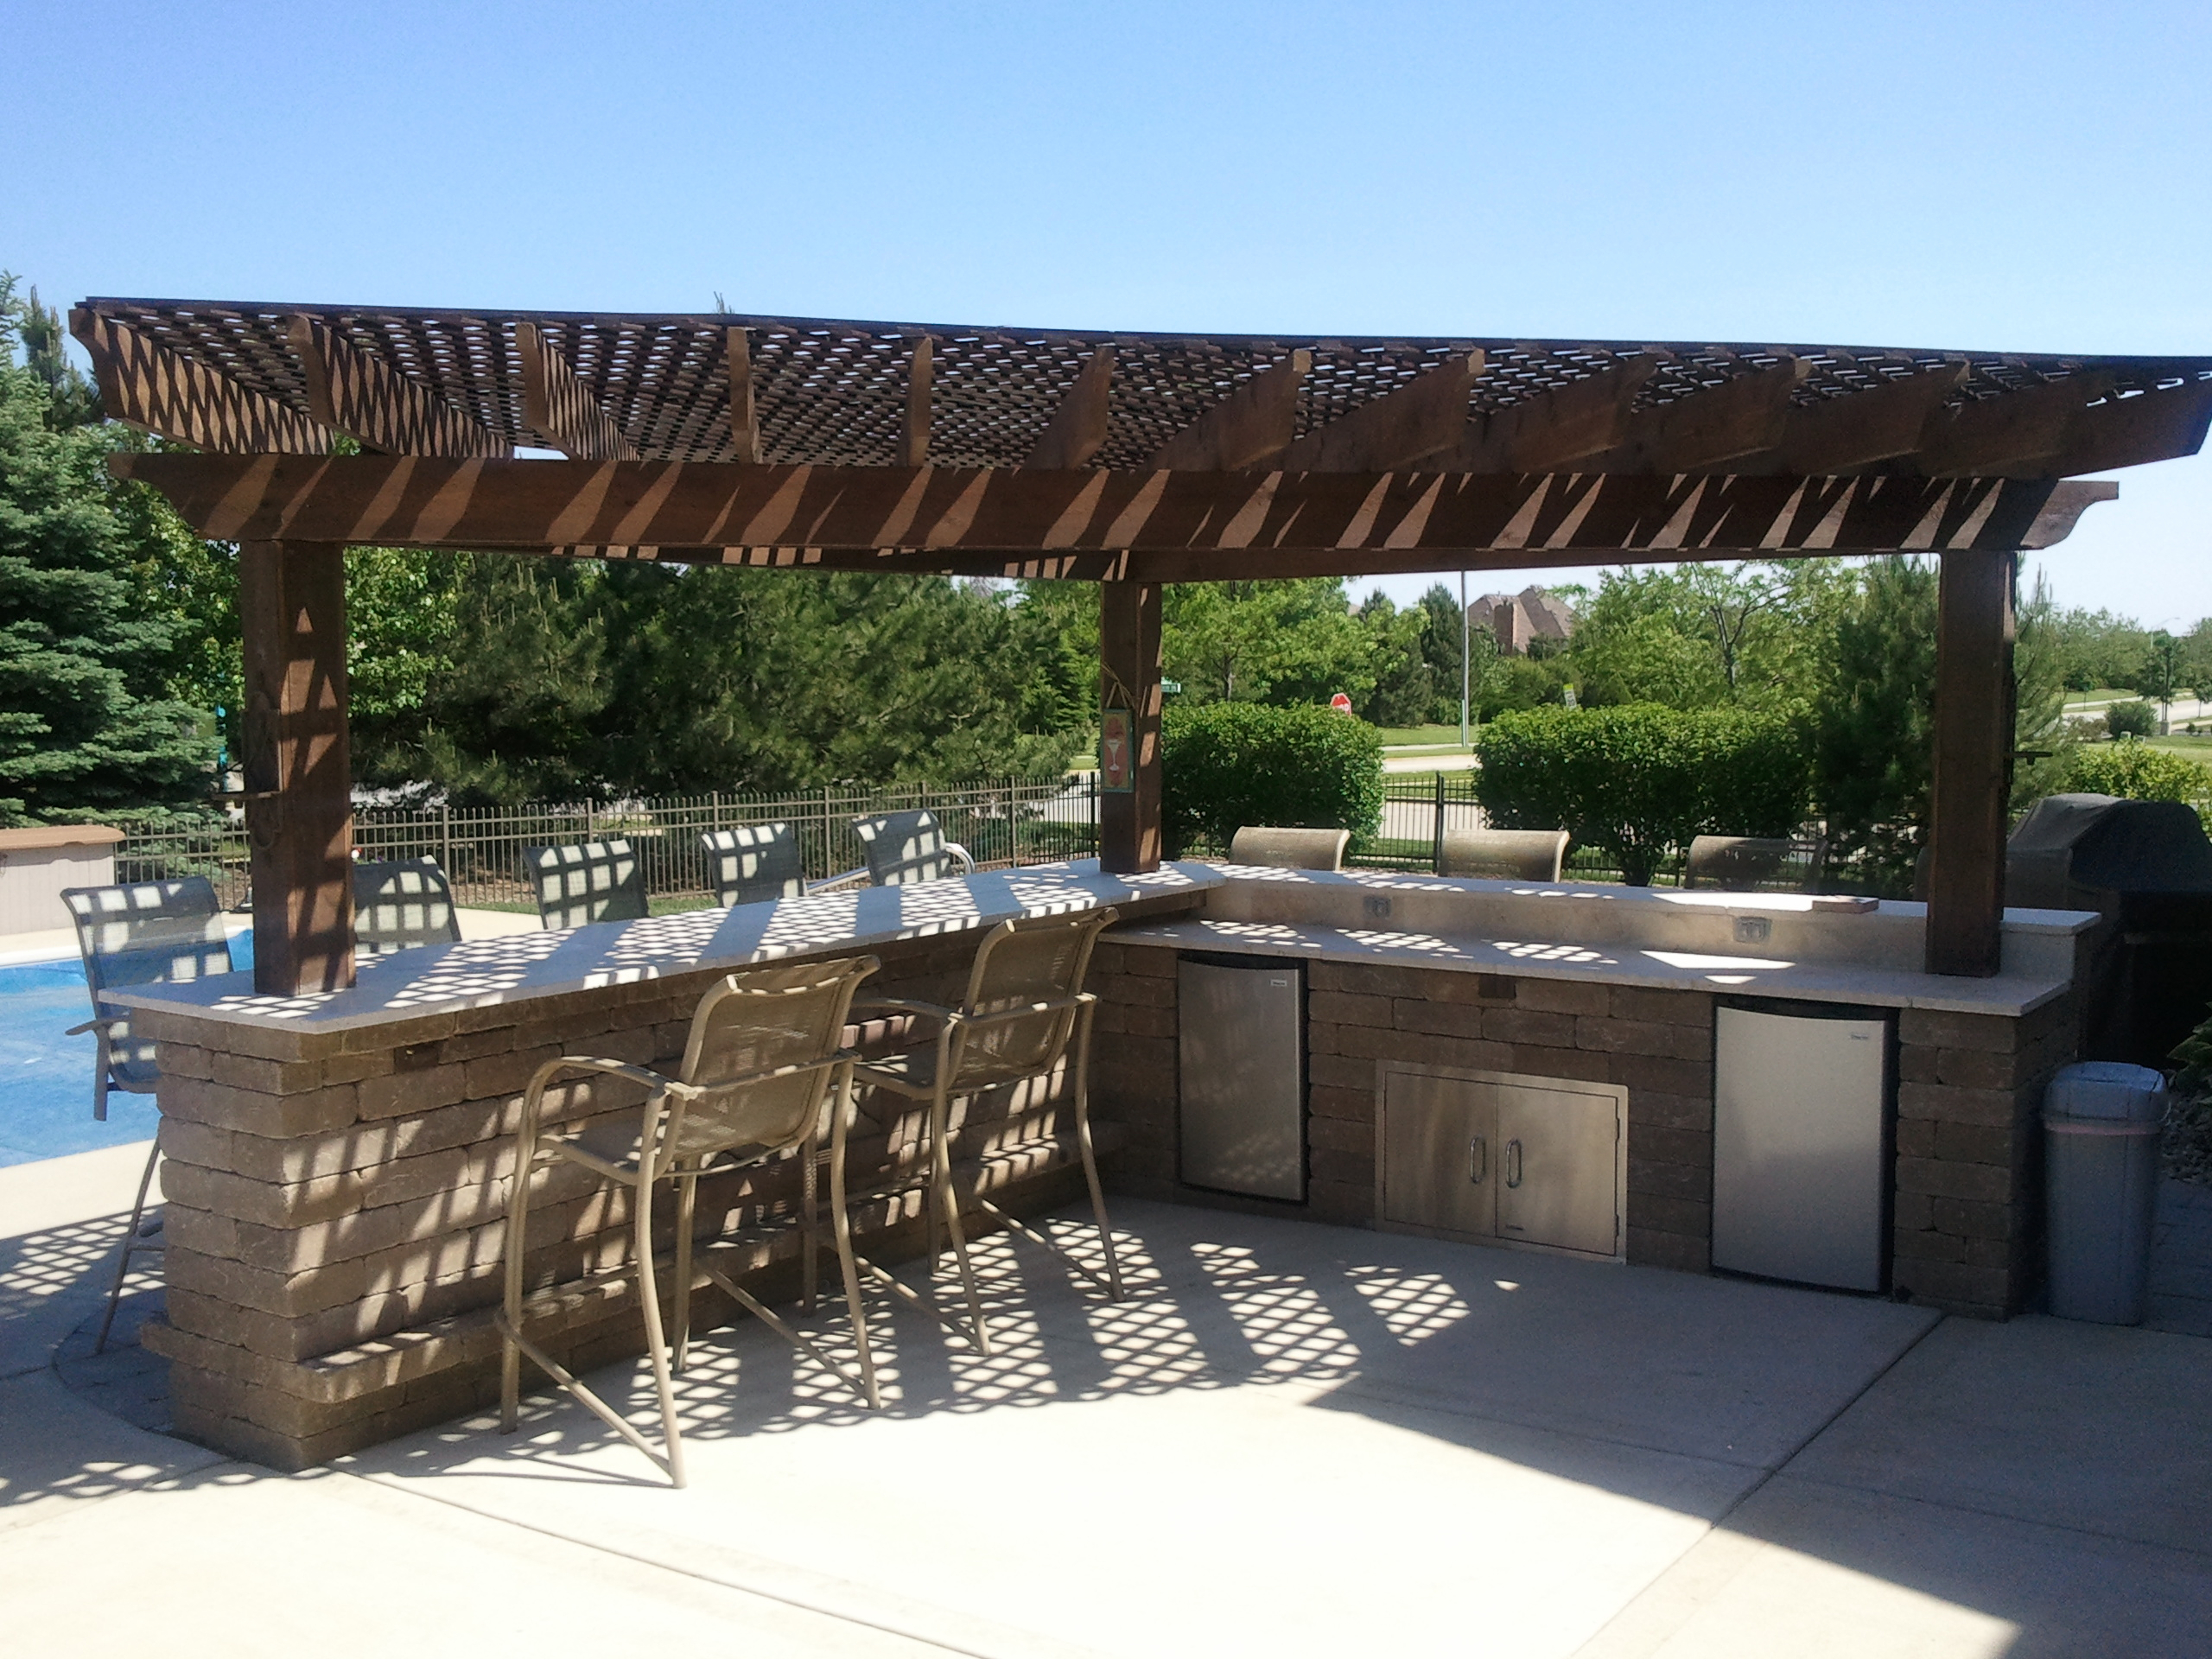 pergola built over bar